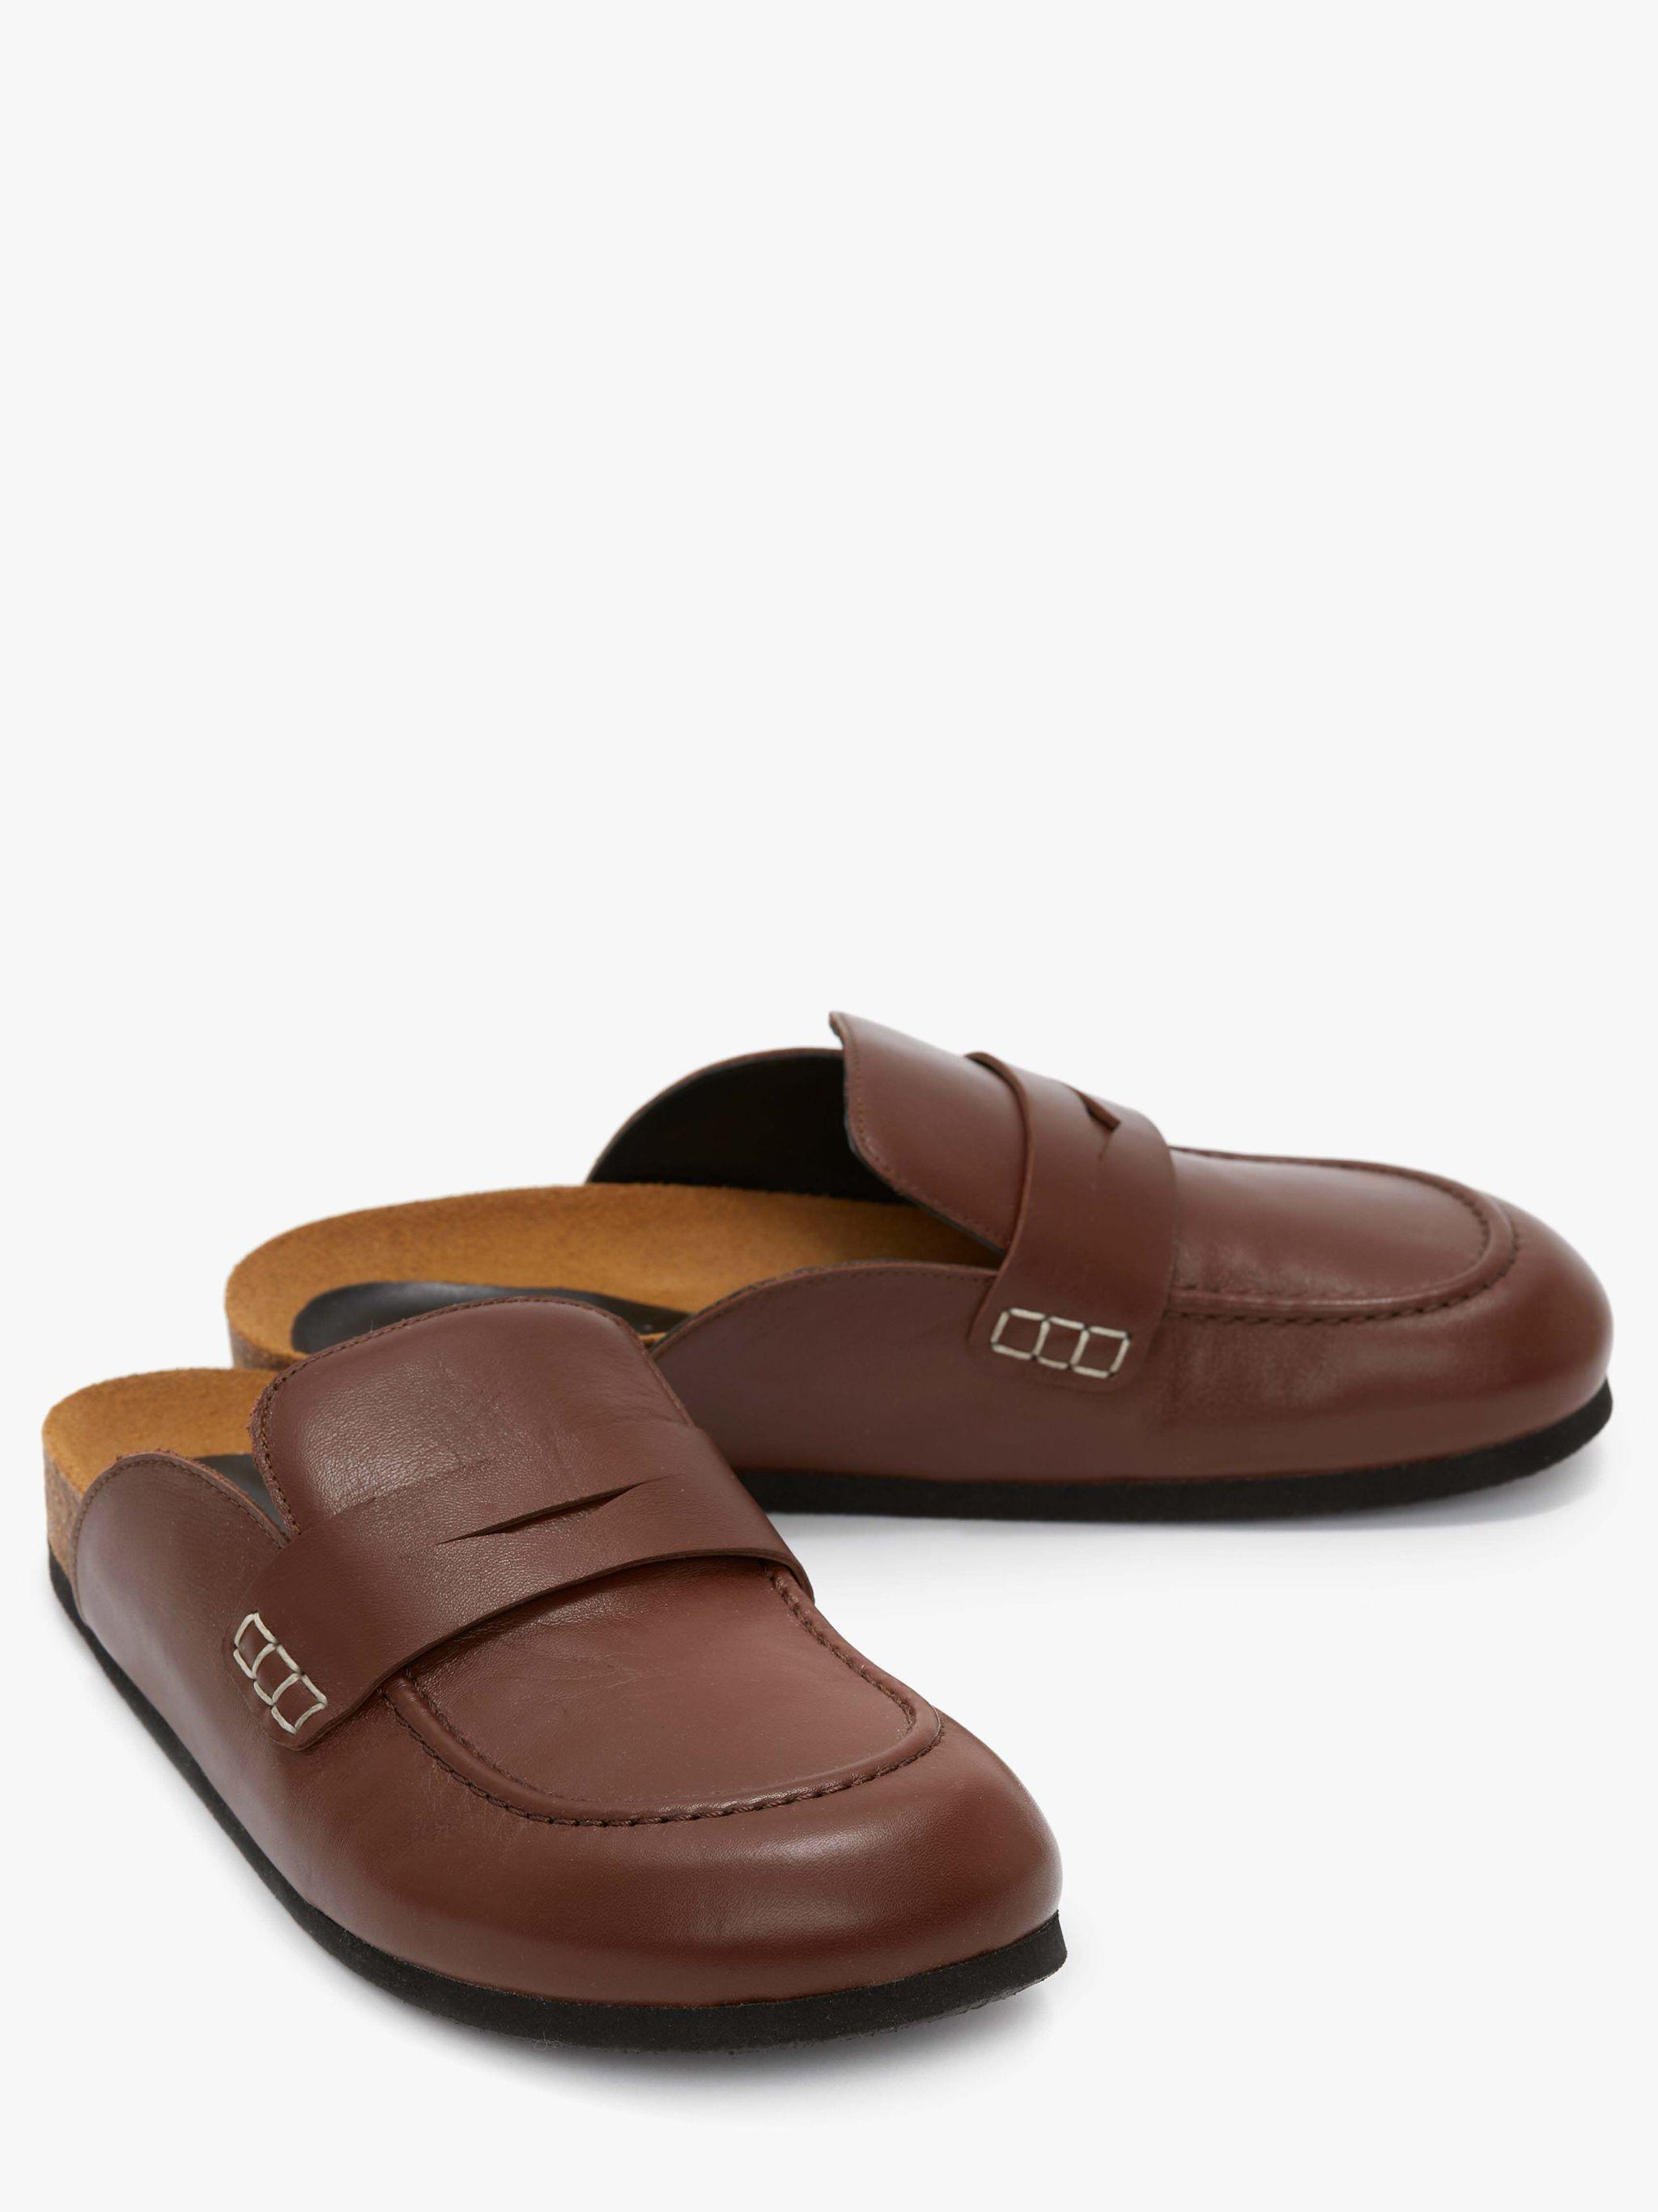 MEN'S LEATHER LOAFER MULES 1